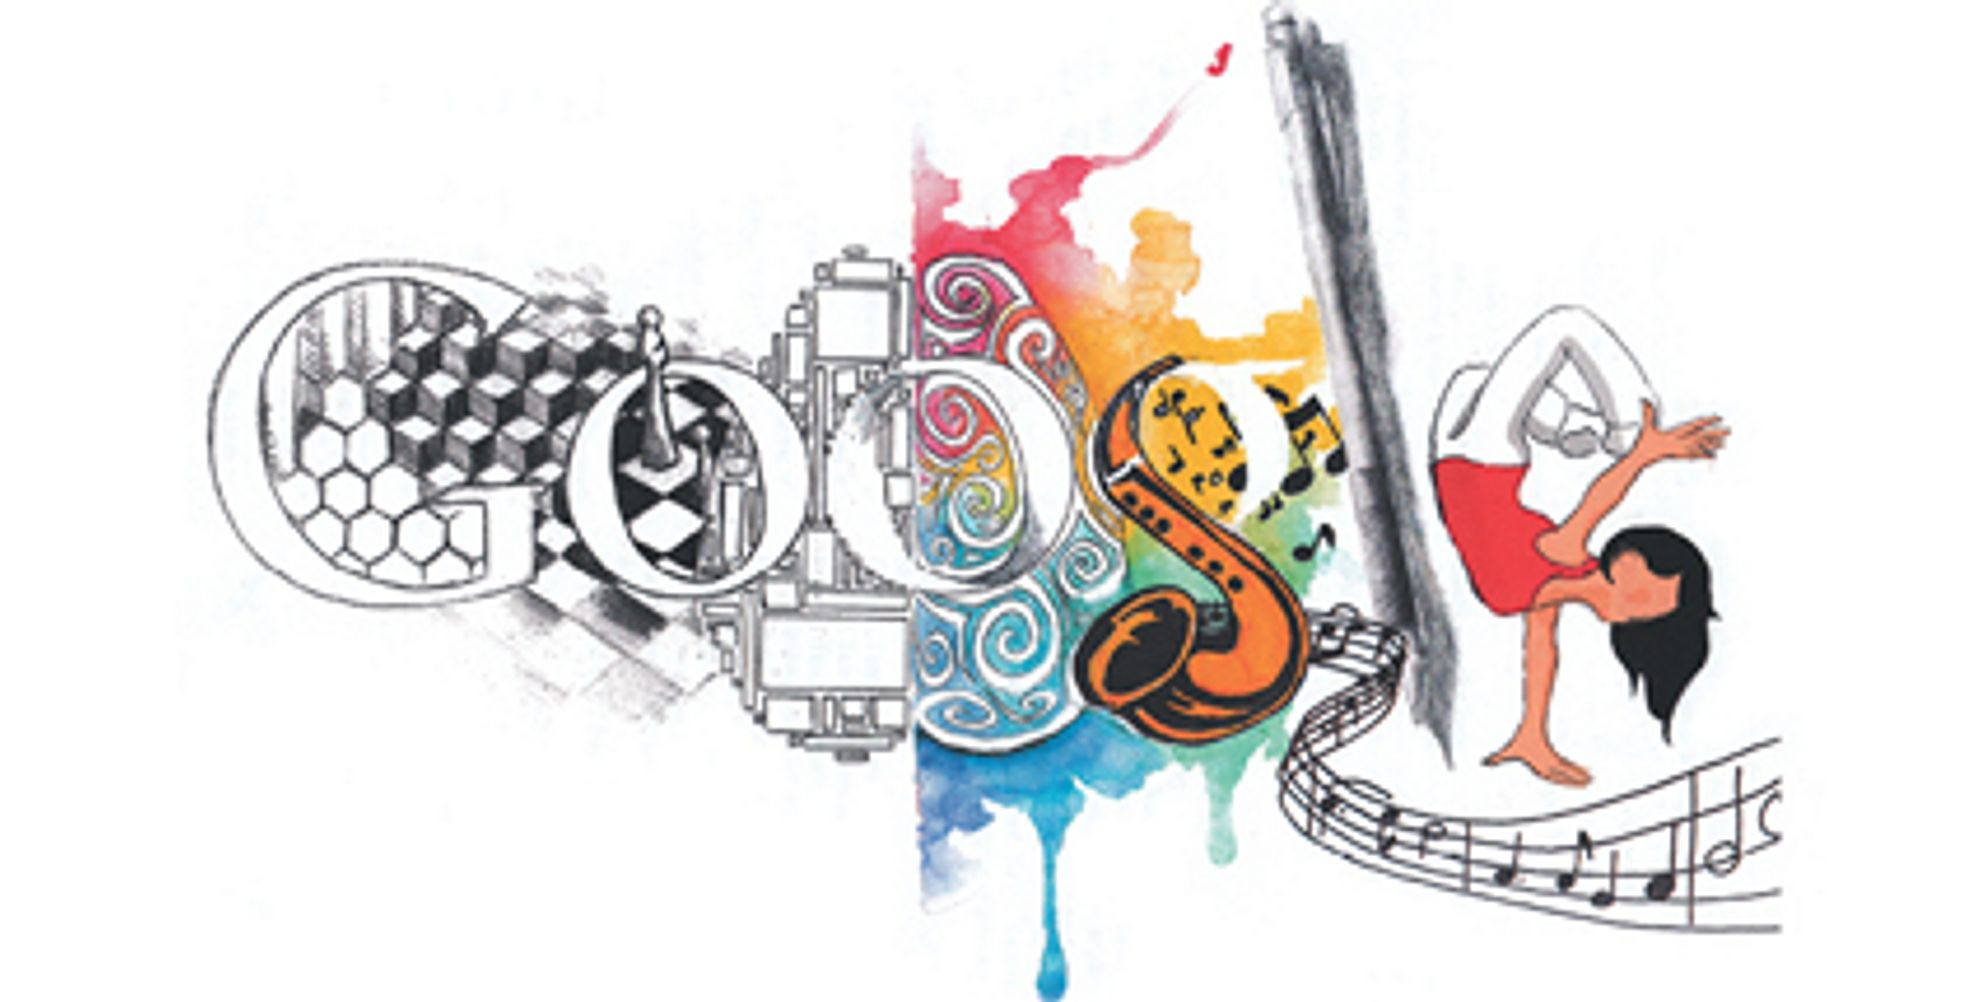 Google themes of the day